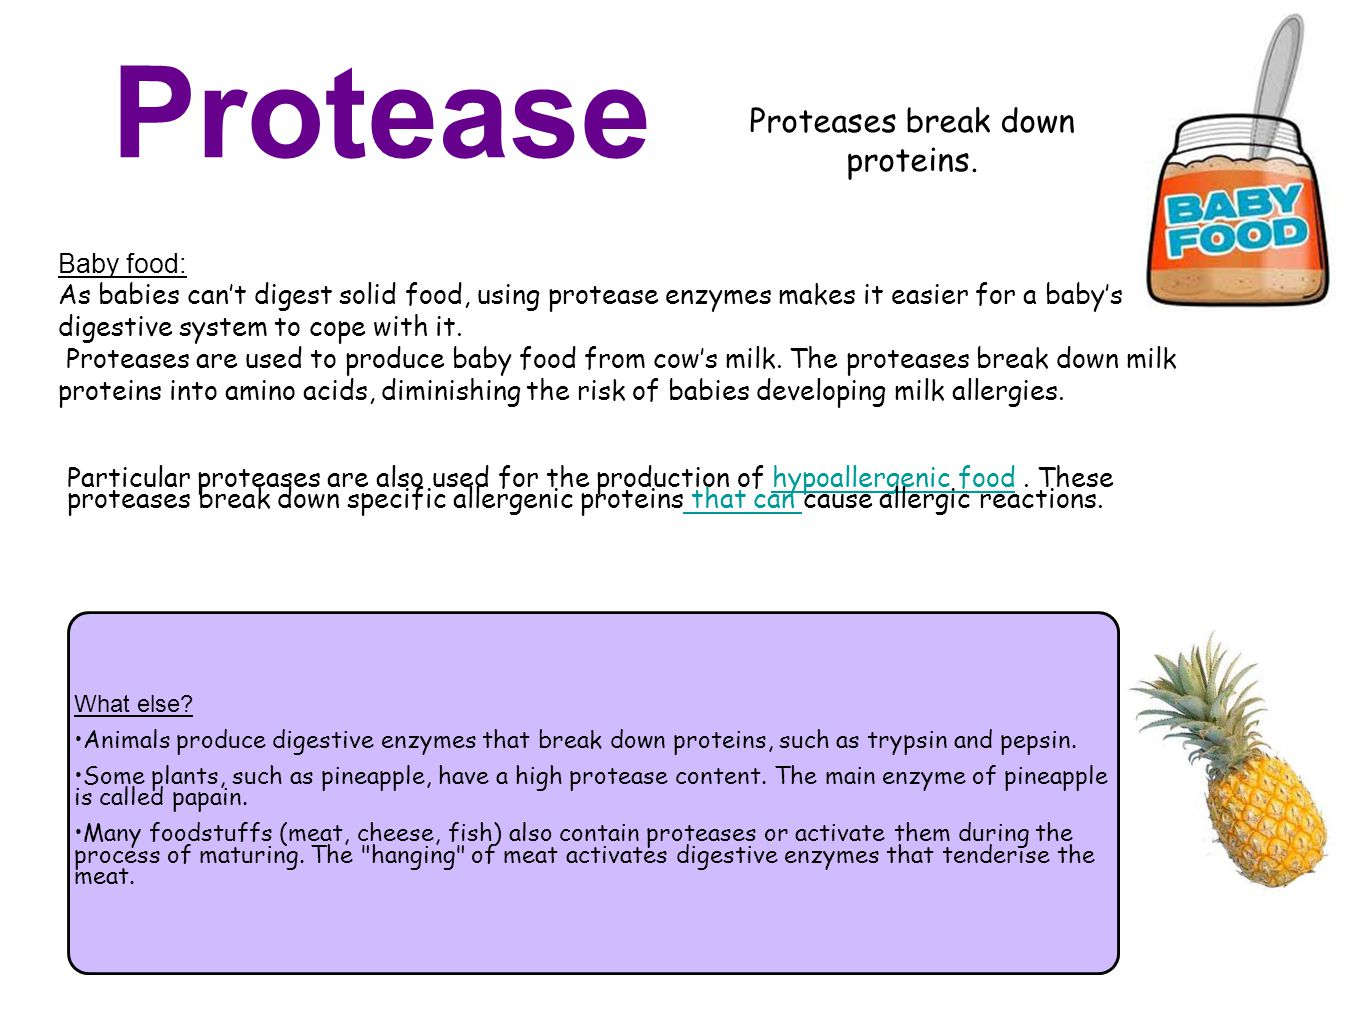 How Is Baby Food Made Using Enzymes